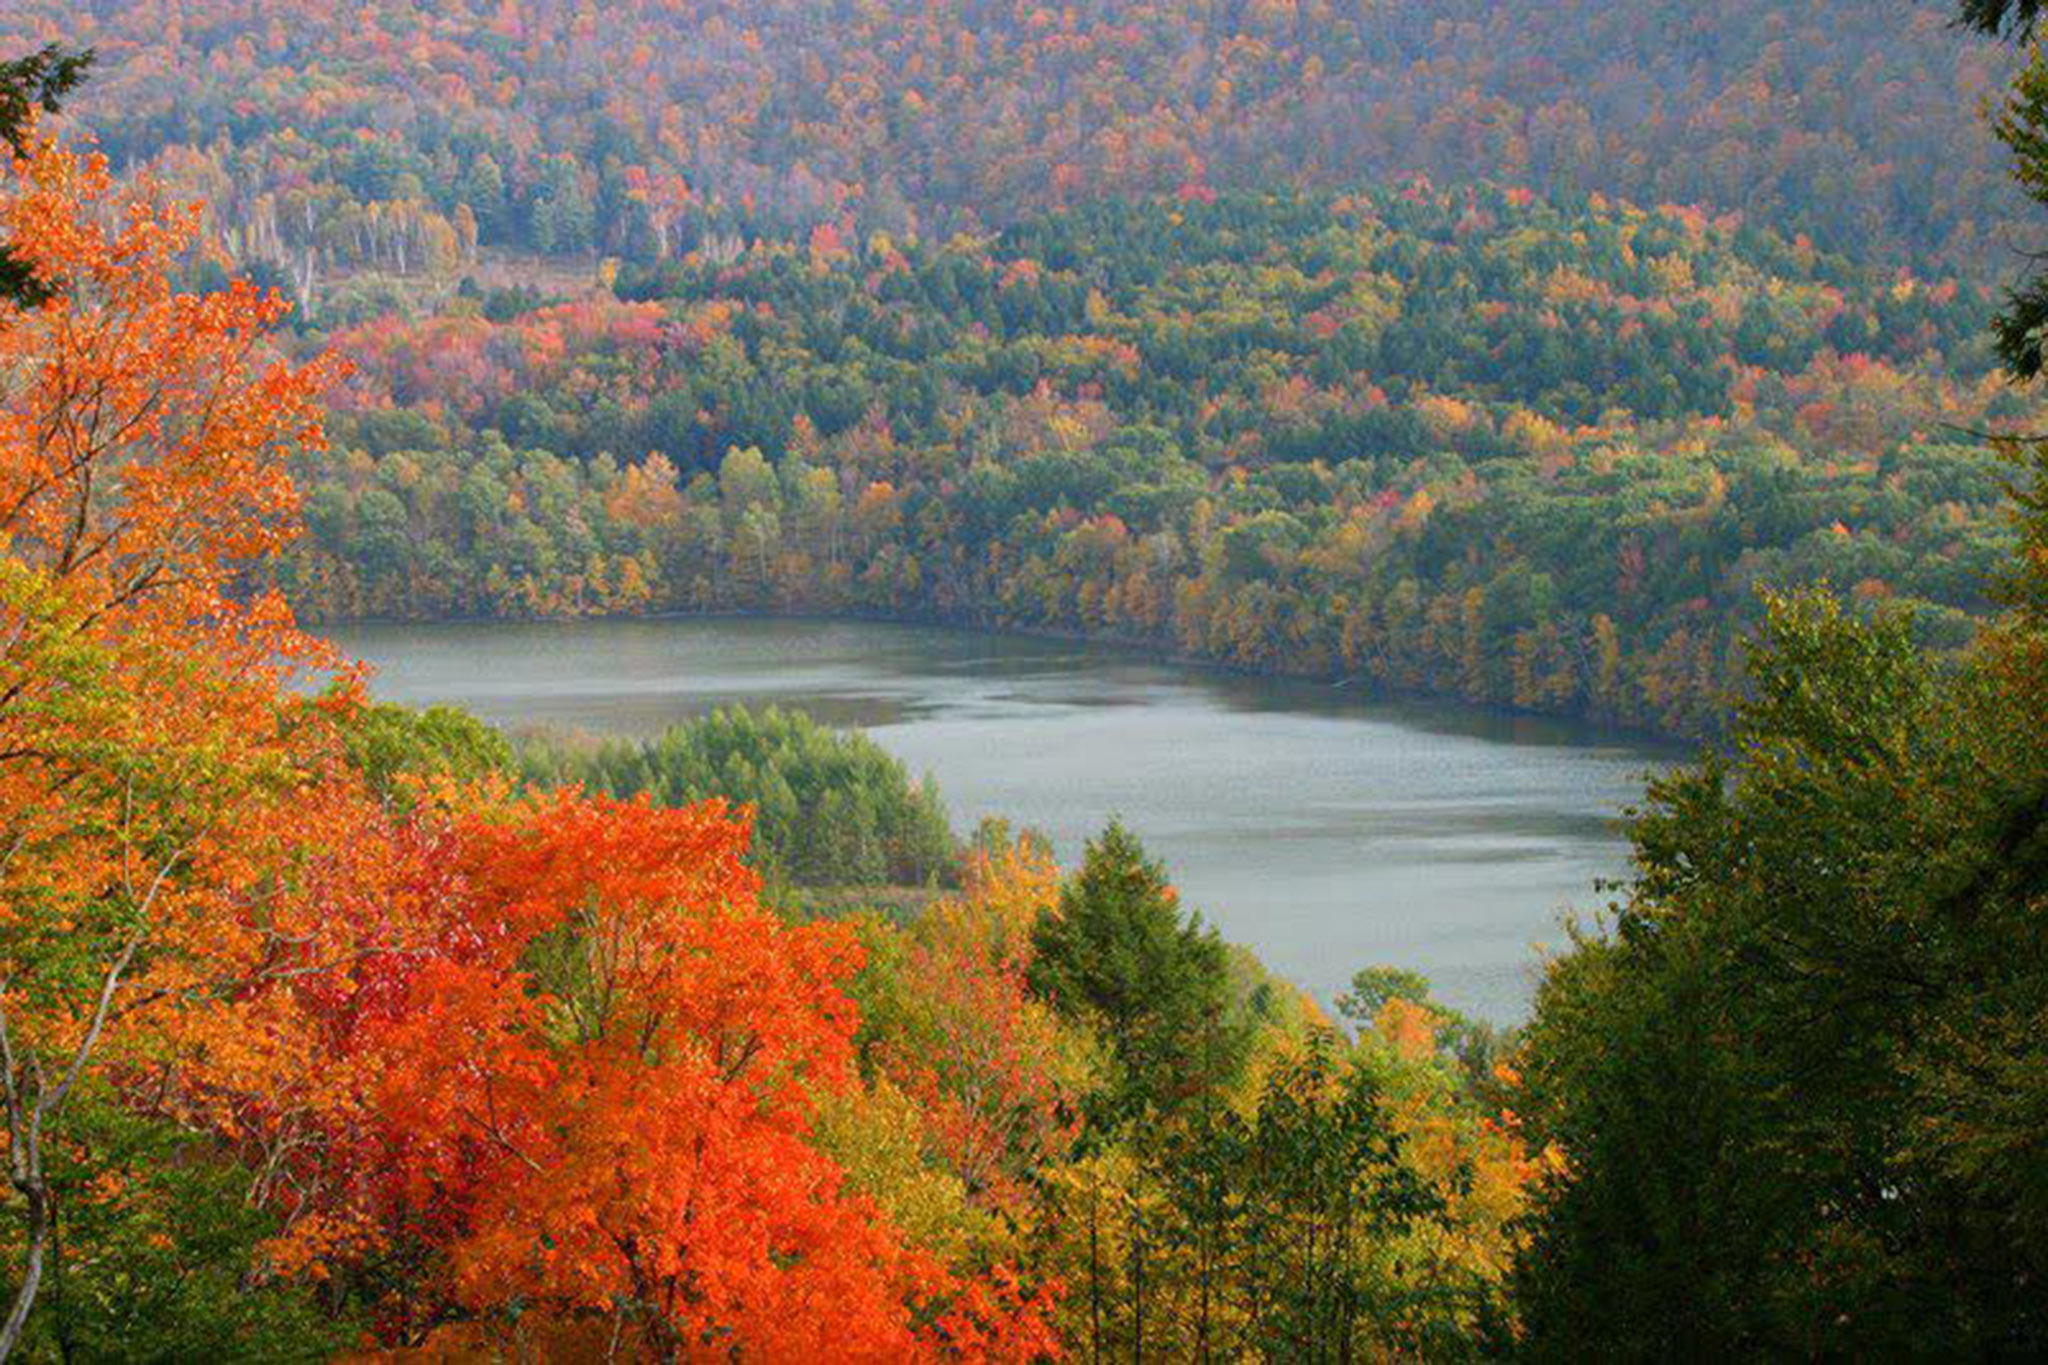 The 10 best places to go leaf peeping in the Catskills